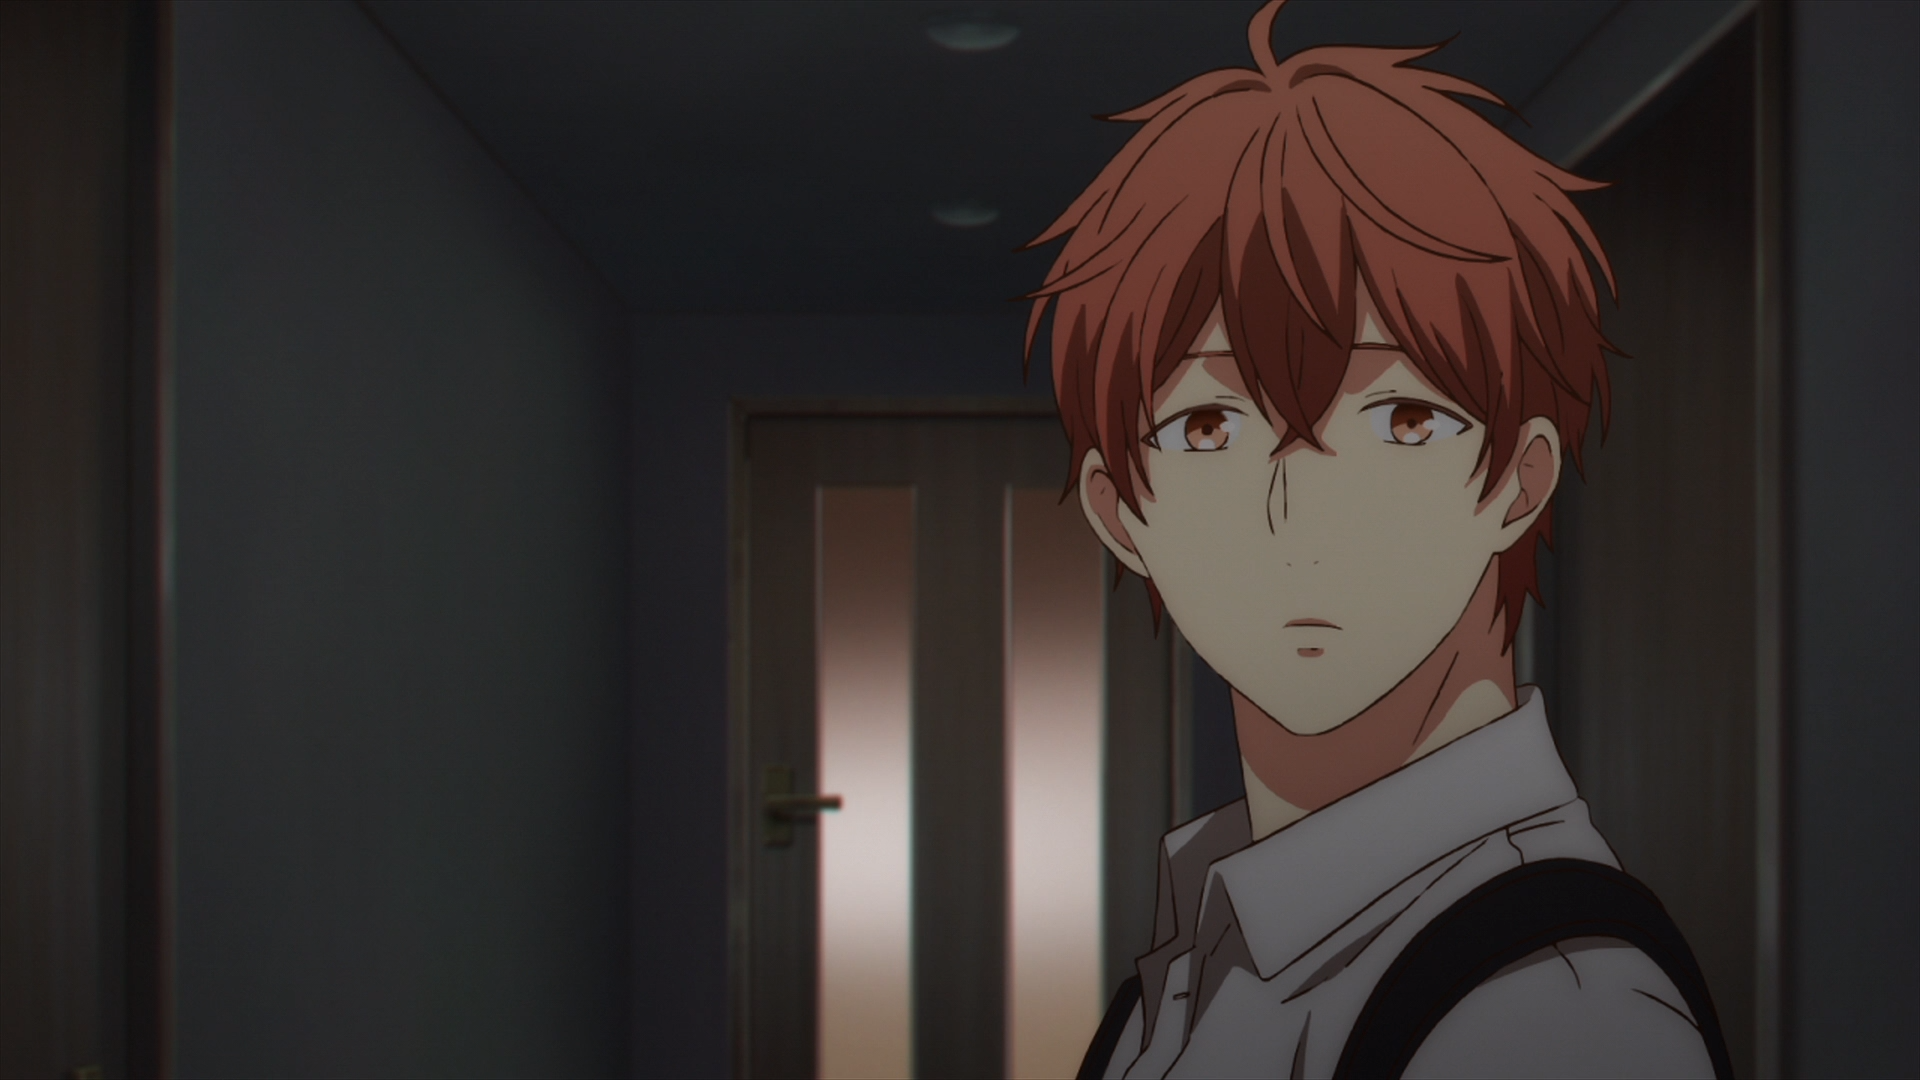 Mafuyu watching Ritsuka walking into the door (19).png